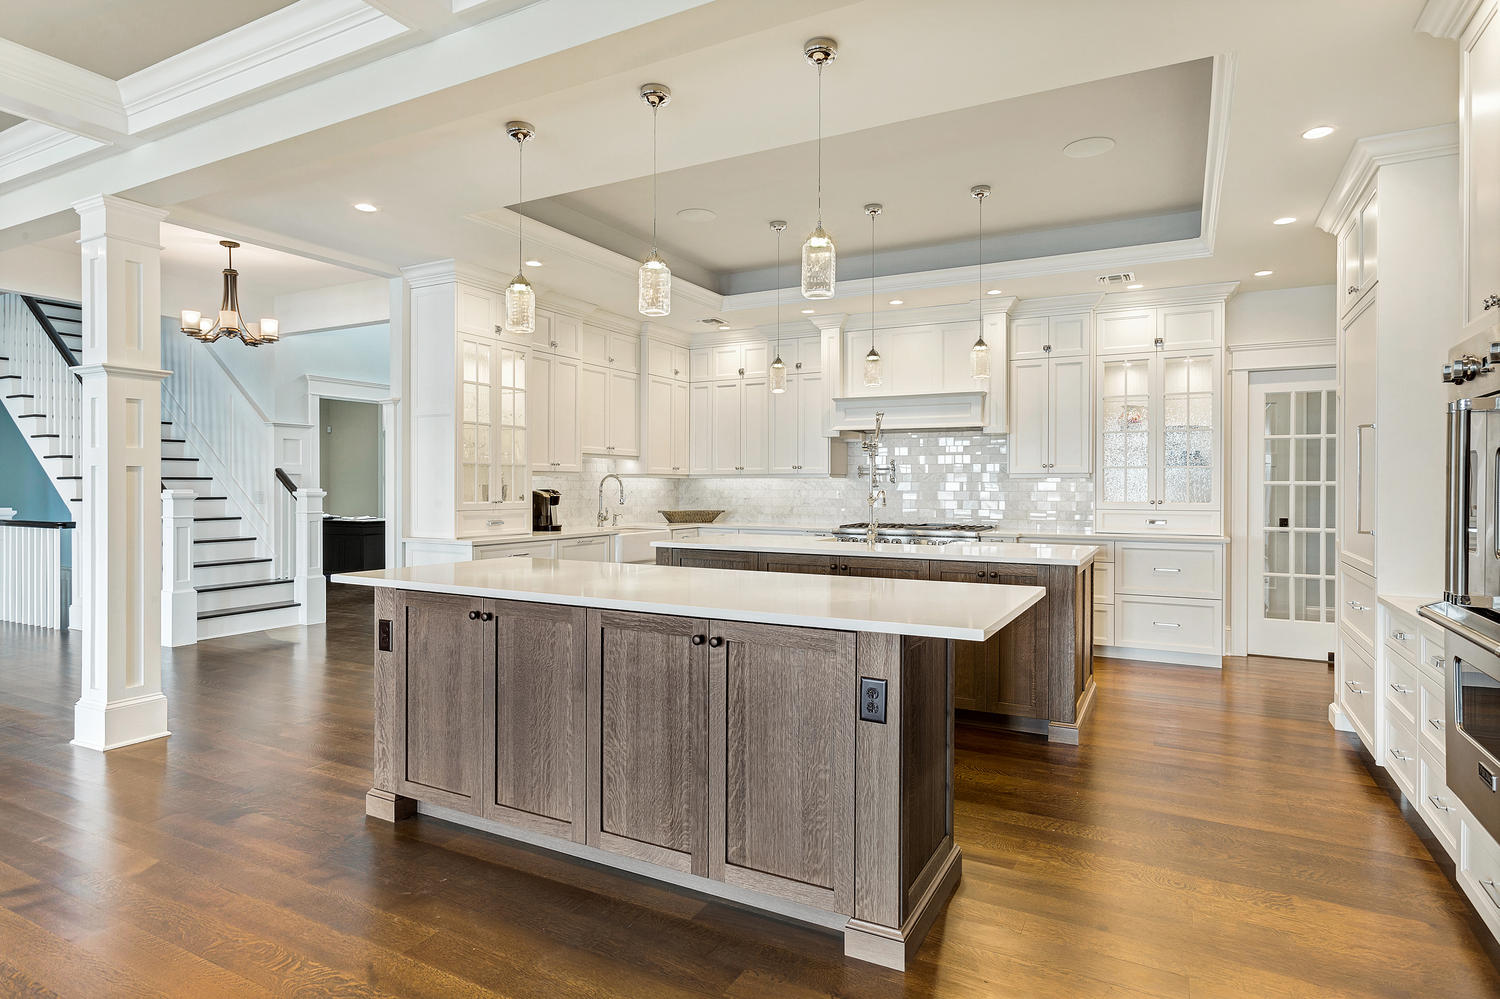 Kitchen Design Center Galleria Design Center Galleria Dream Kitchen